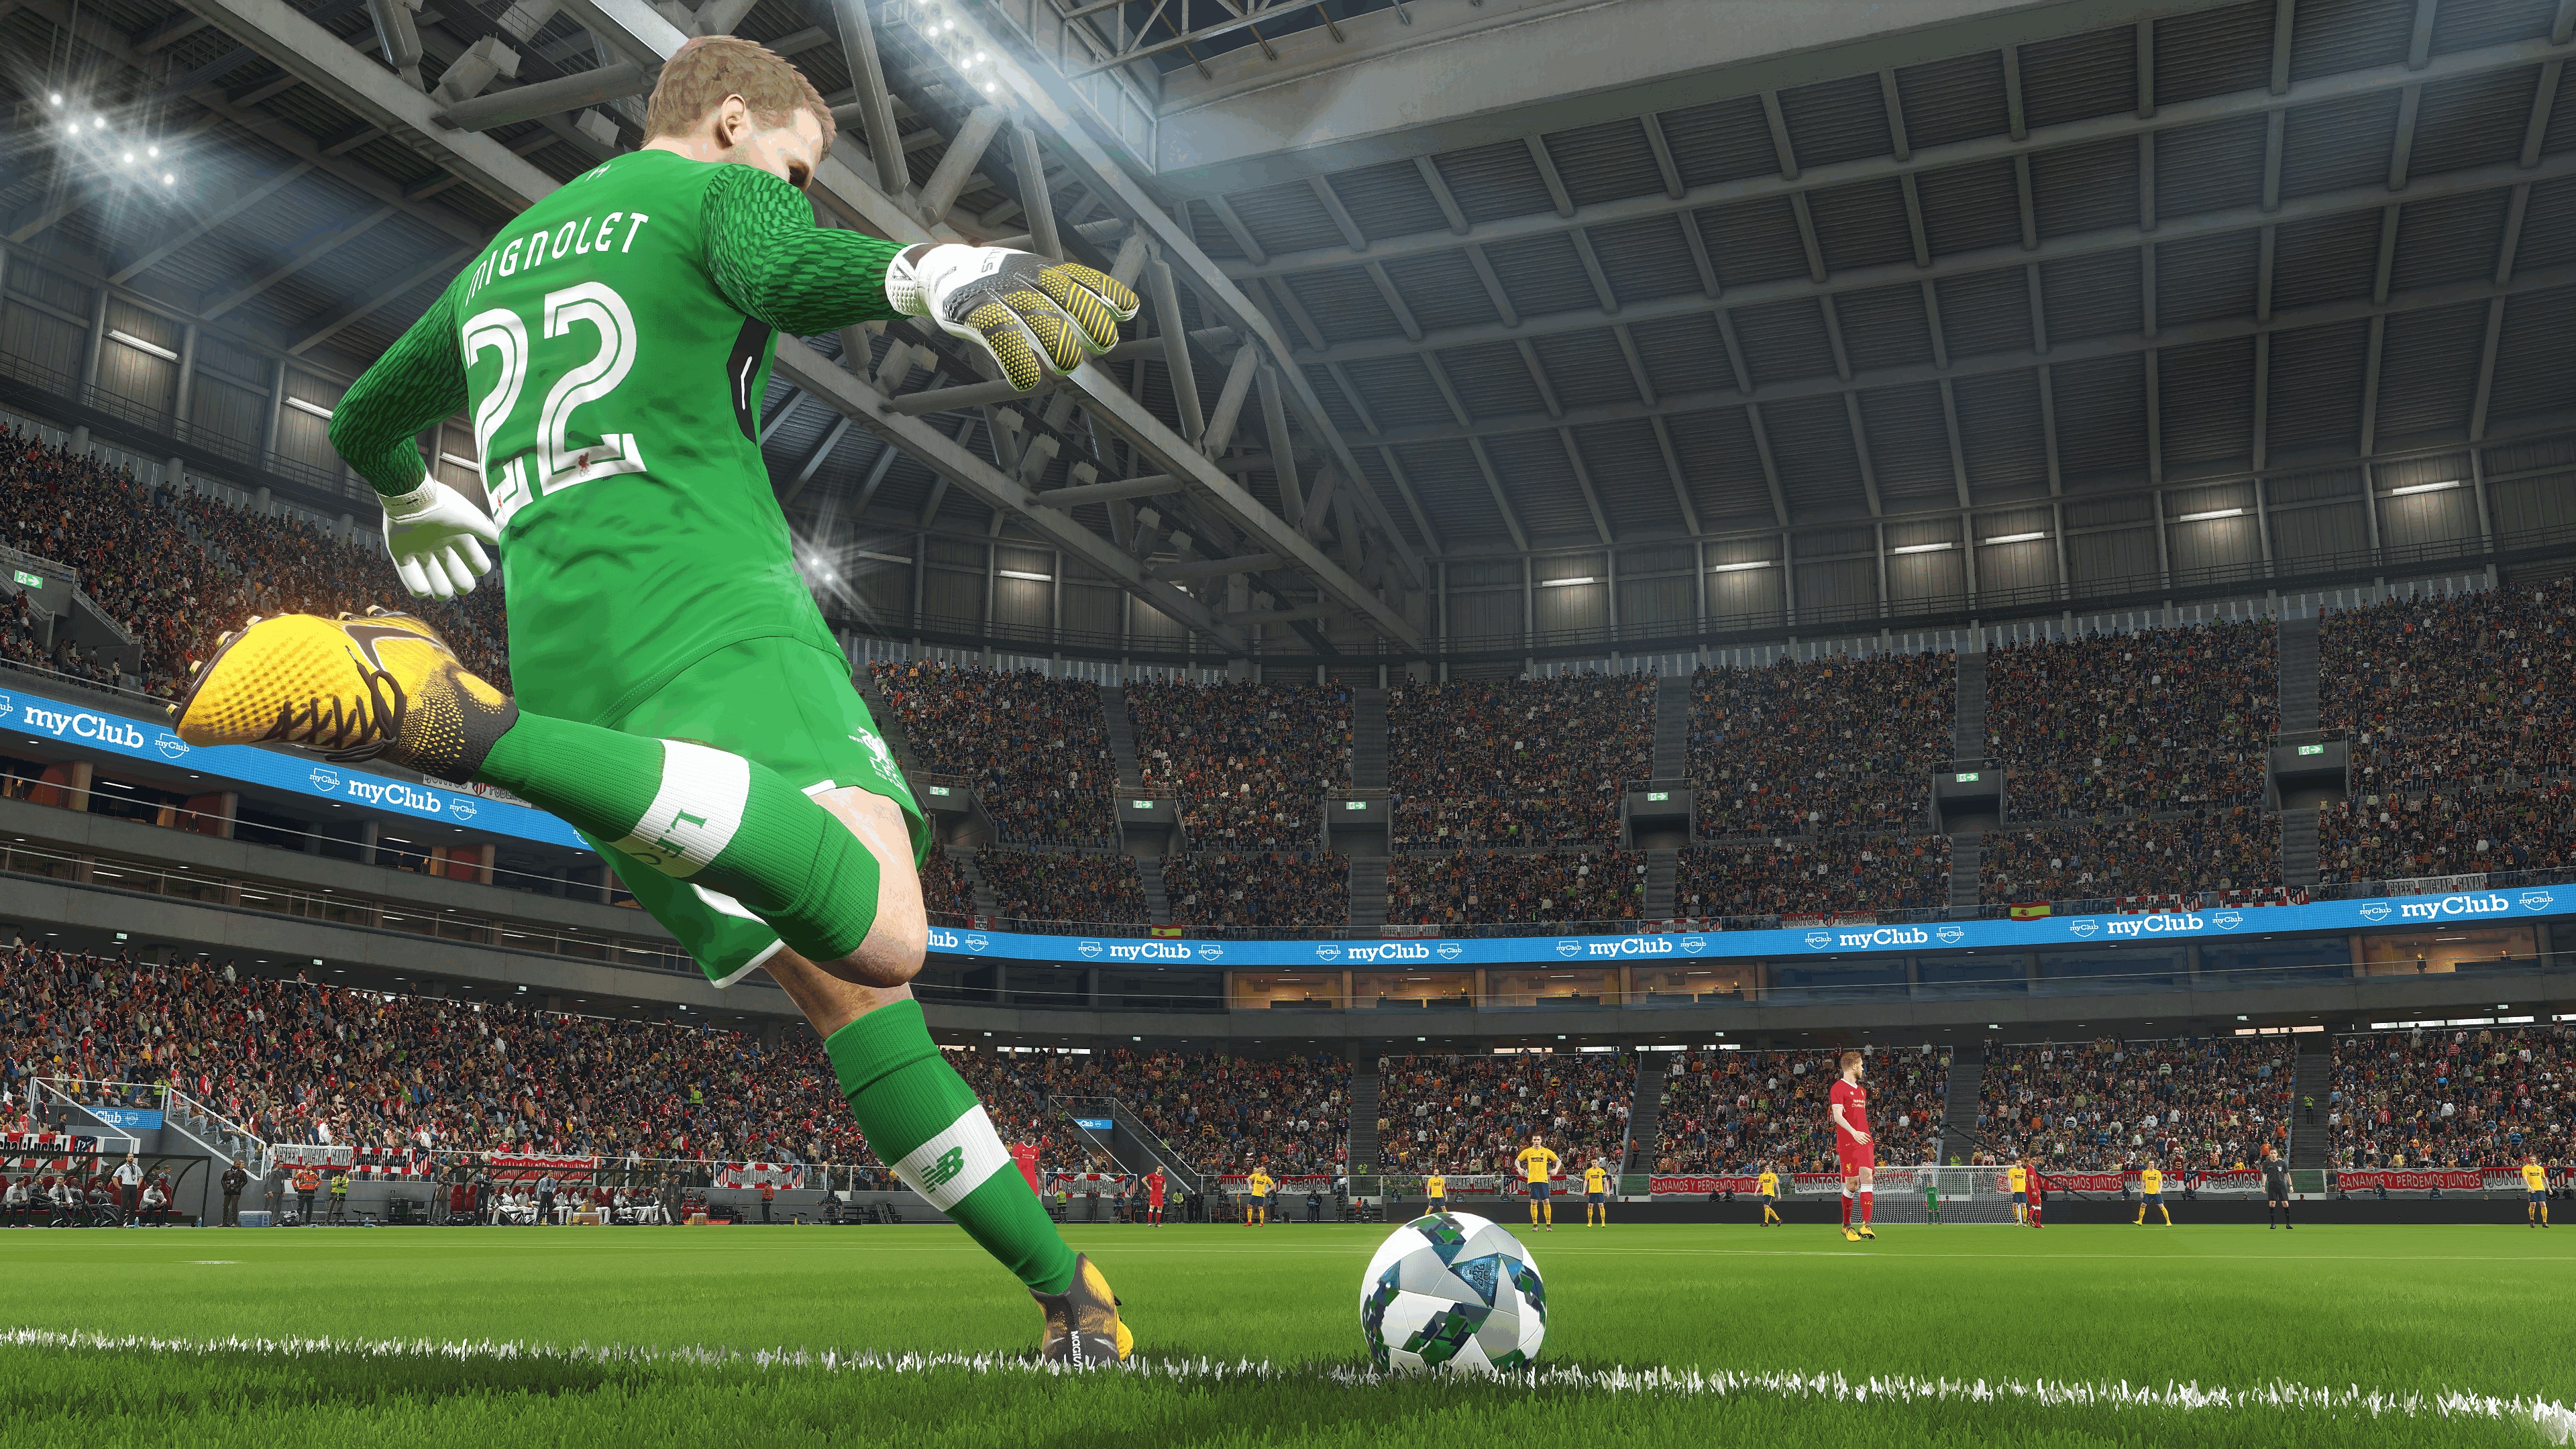 Pro Evolution 2018 looks pretty sharp through Nvidia's Ansel tech, and here's the screenshots to prove it